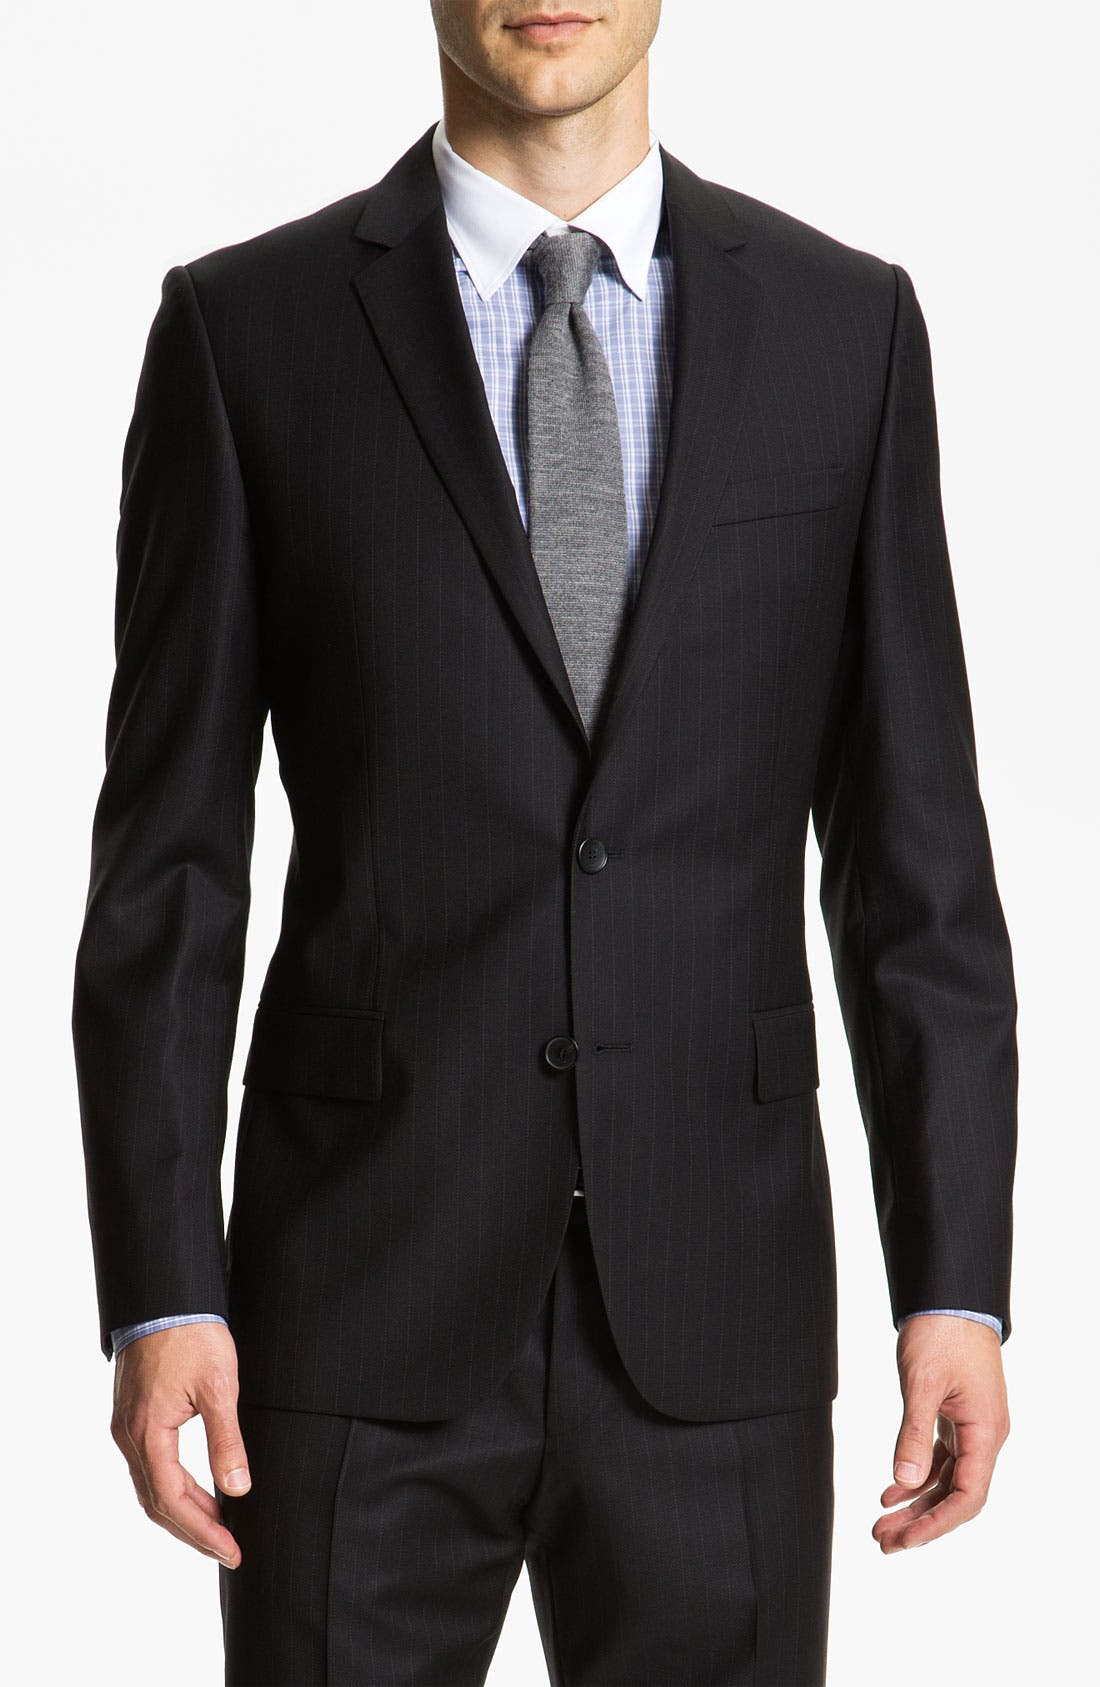 Main Image - HUGO 'Amaro/Heise' Trim Fit Stripe Suit